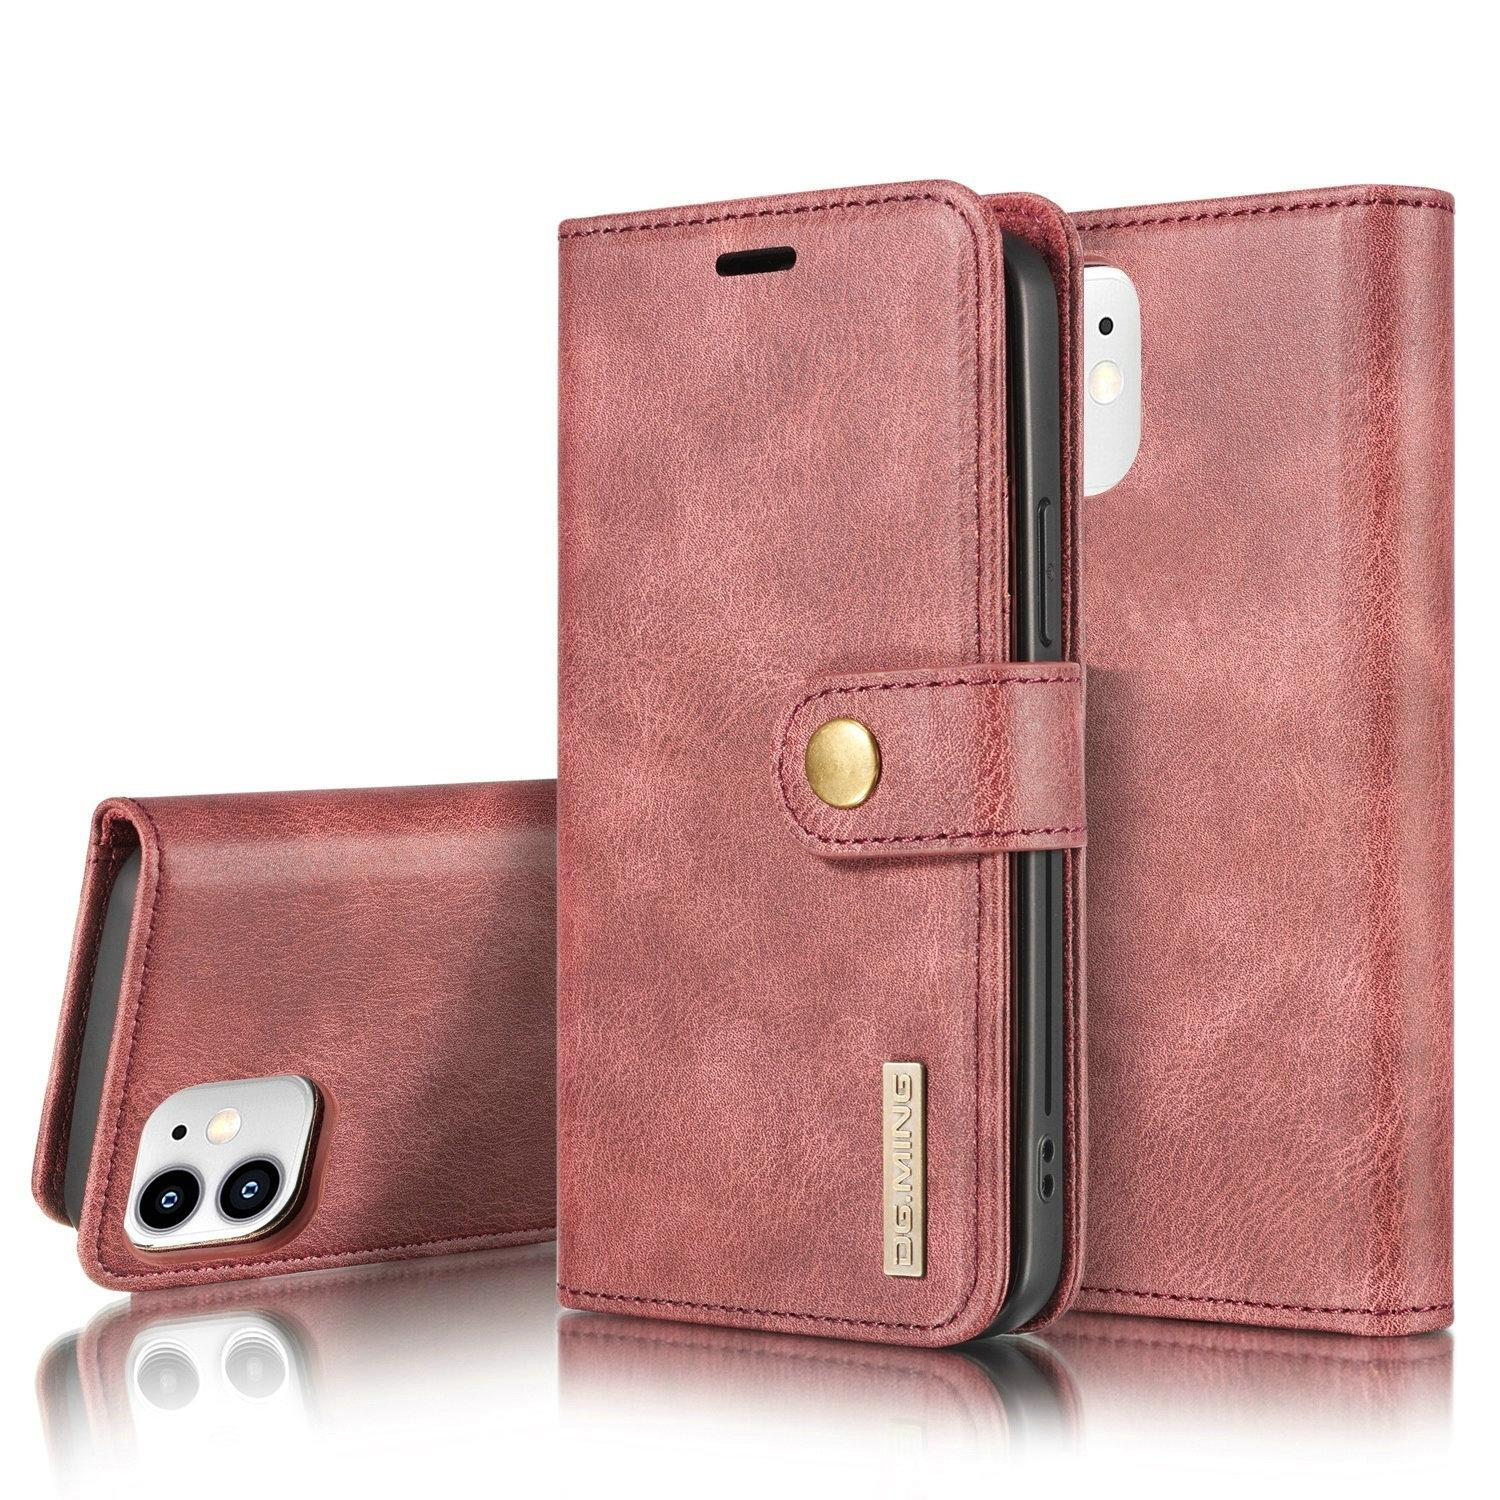 Magnet Wallet iPhone 12 Mini Red